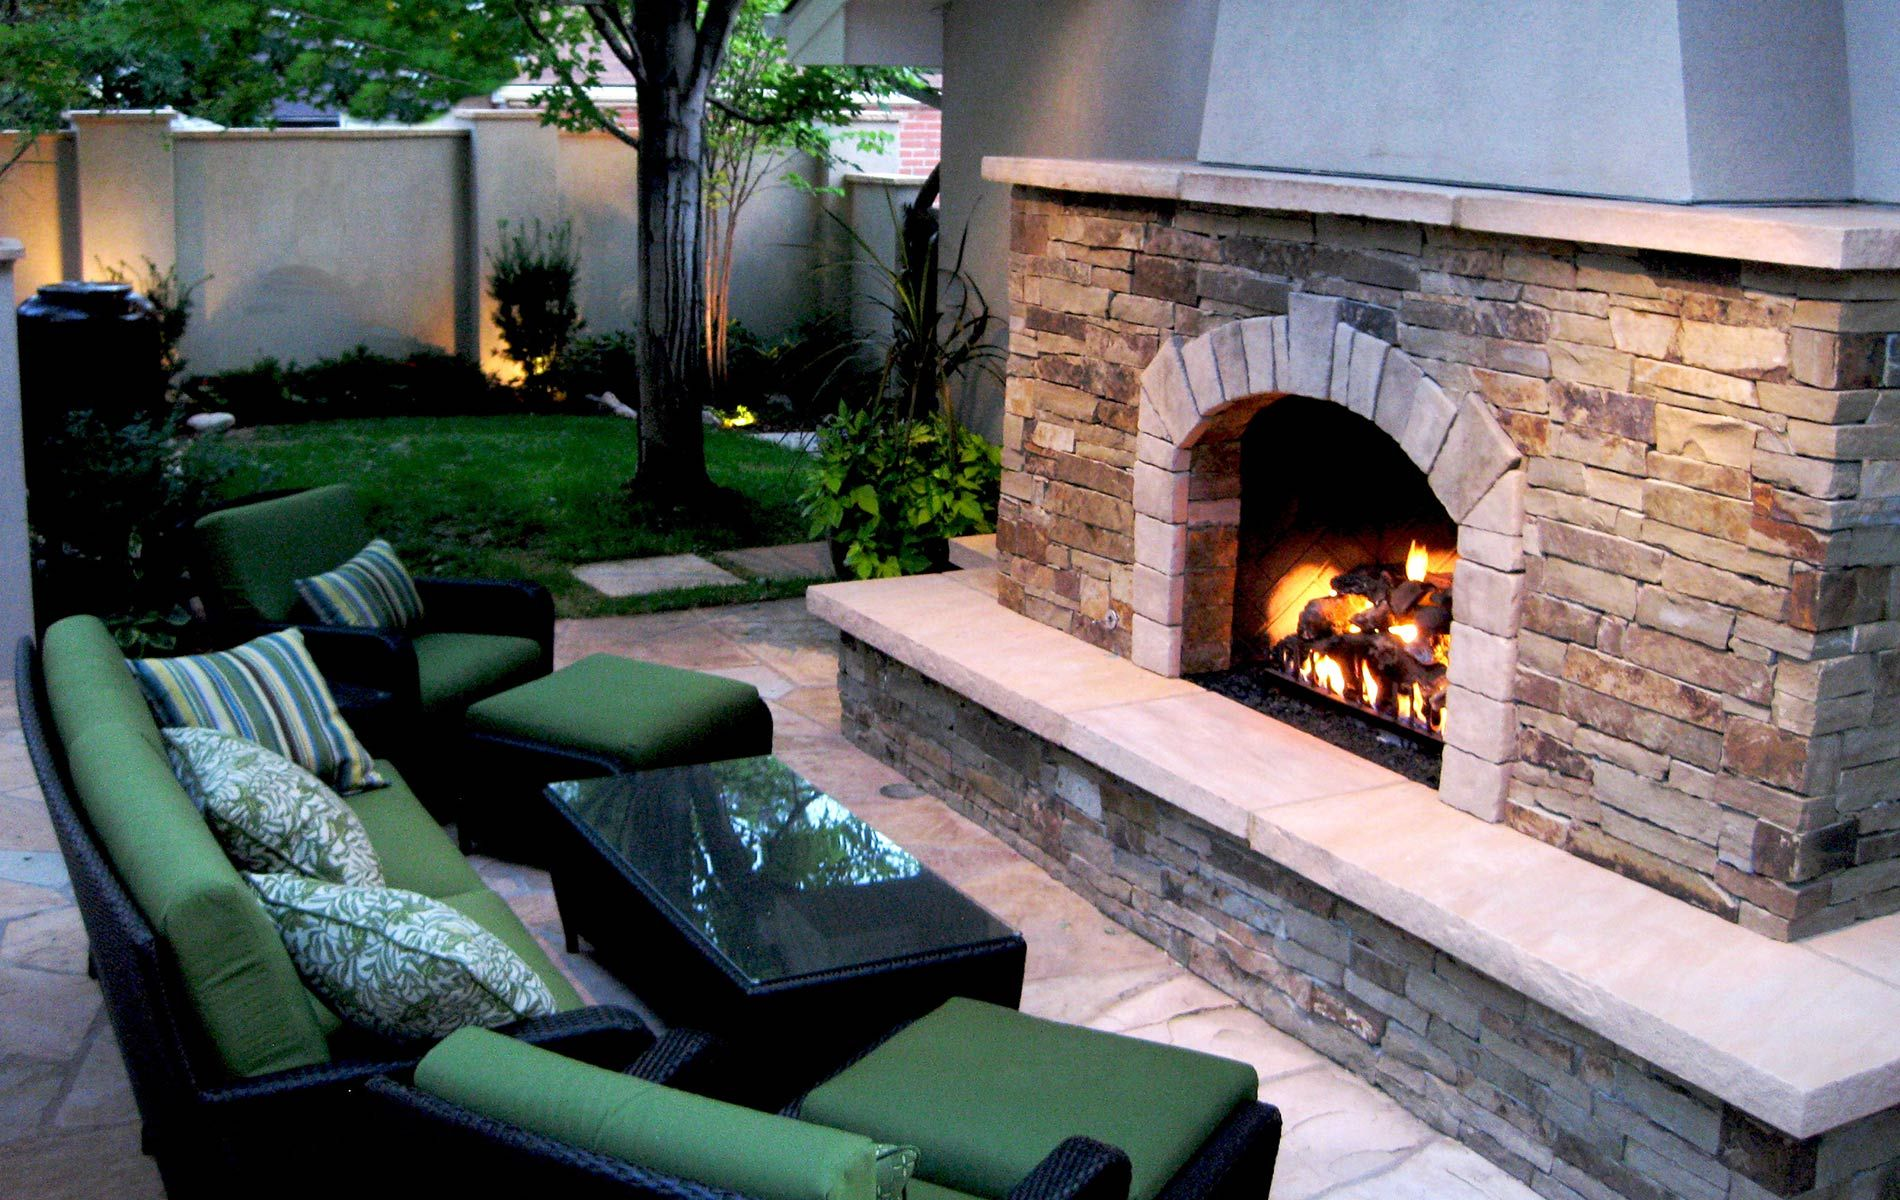 Homage Outdoor Large Stone Fireplace Has A Built In Flagstone